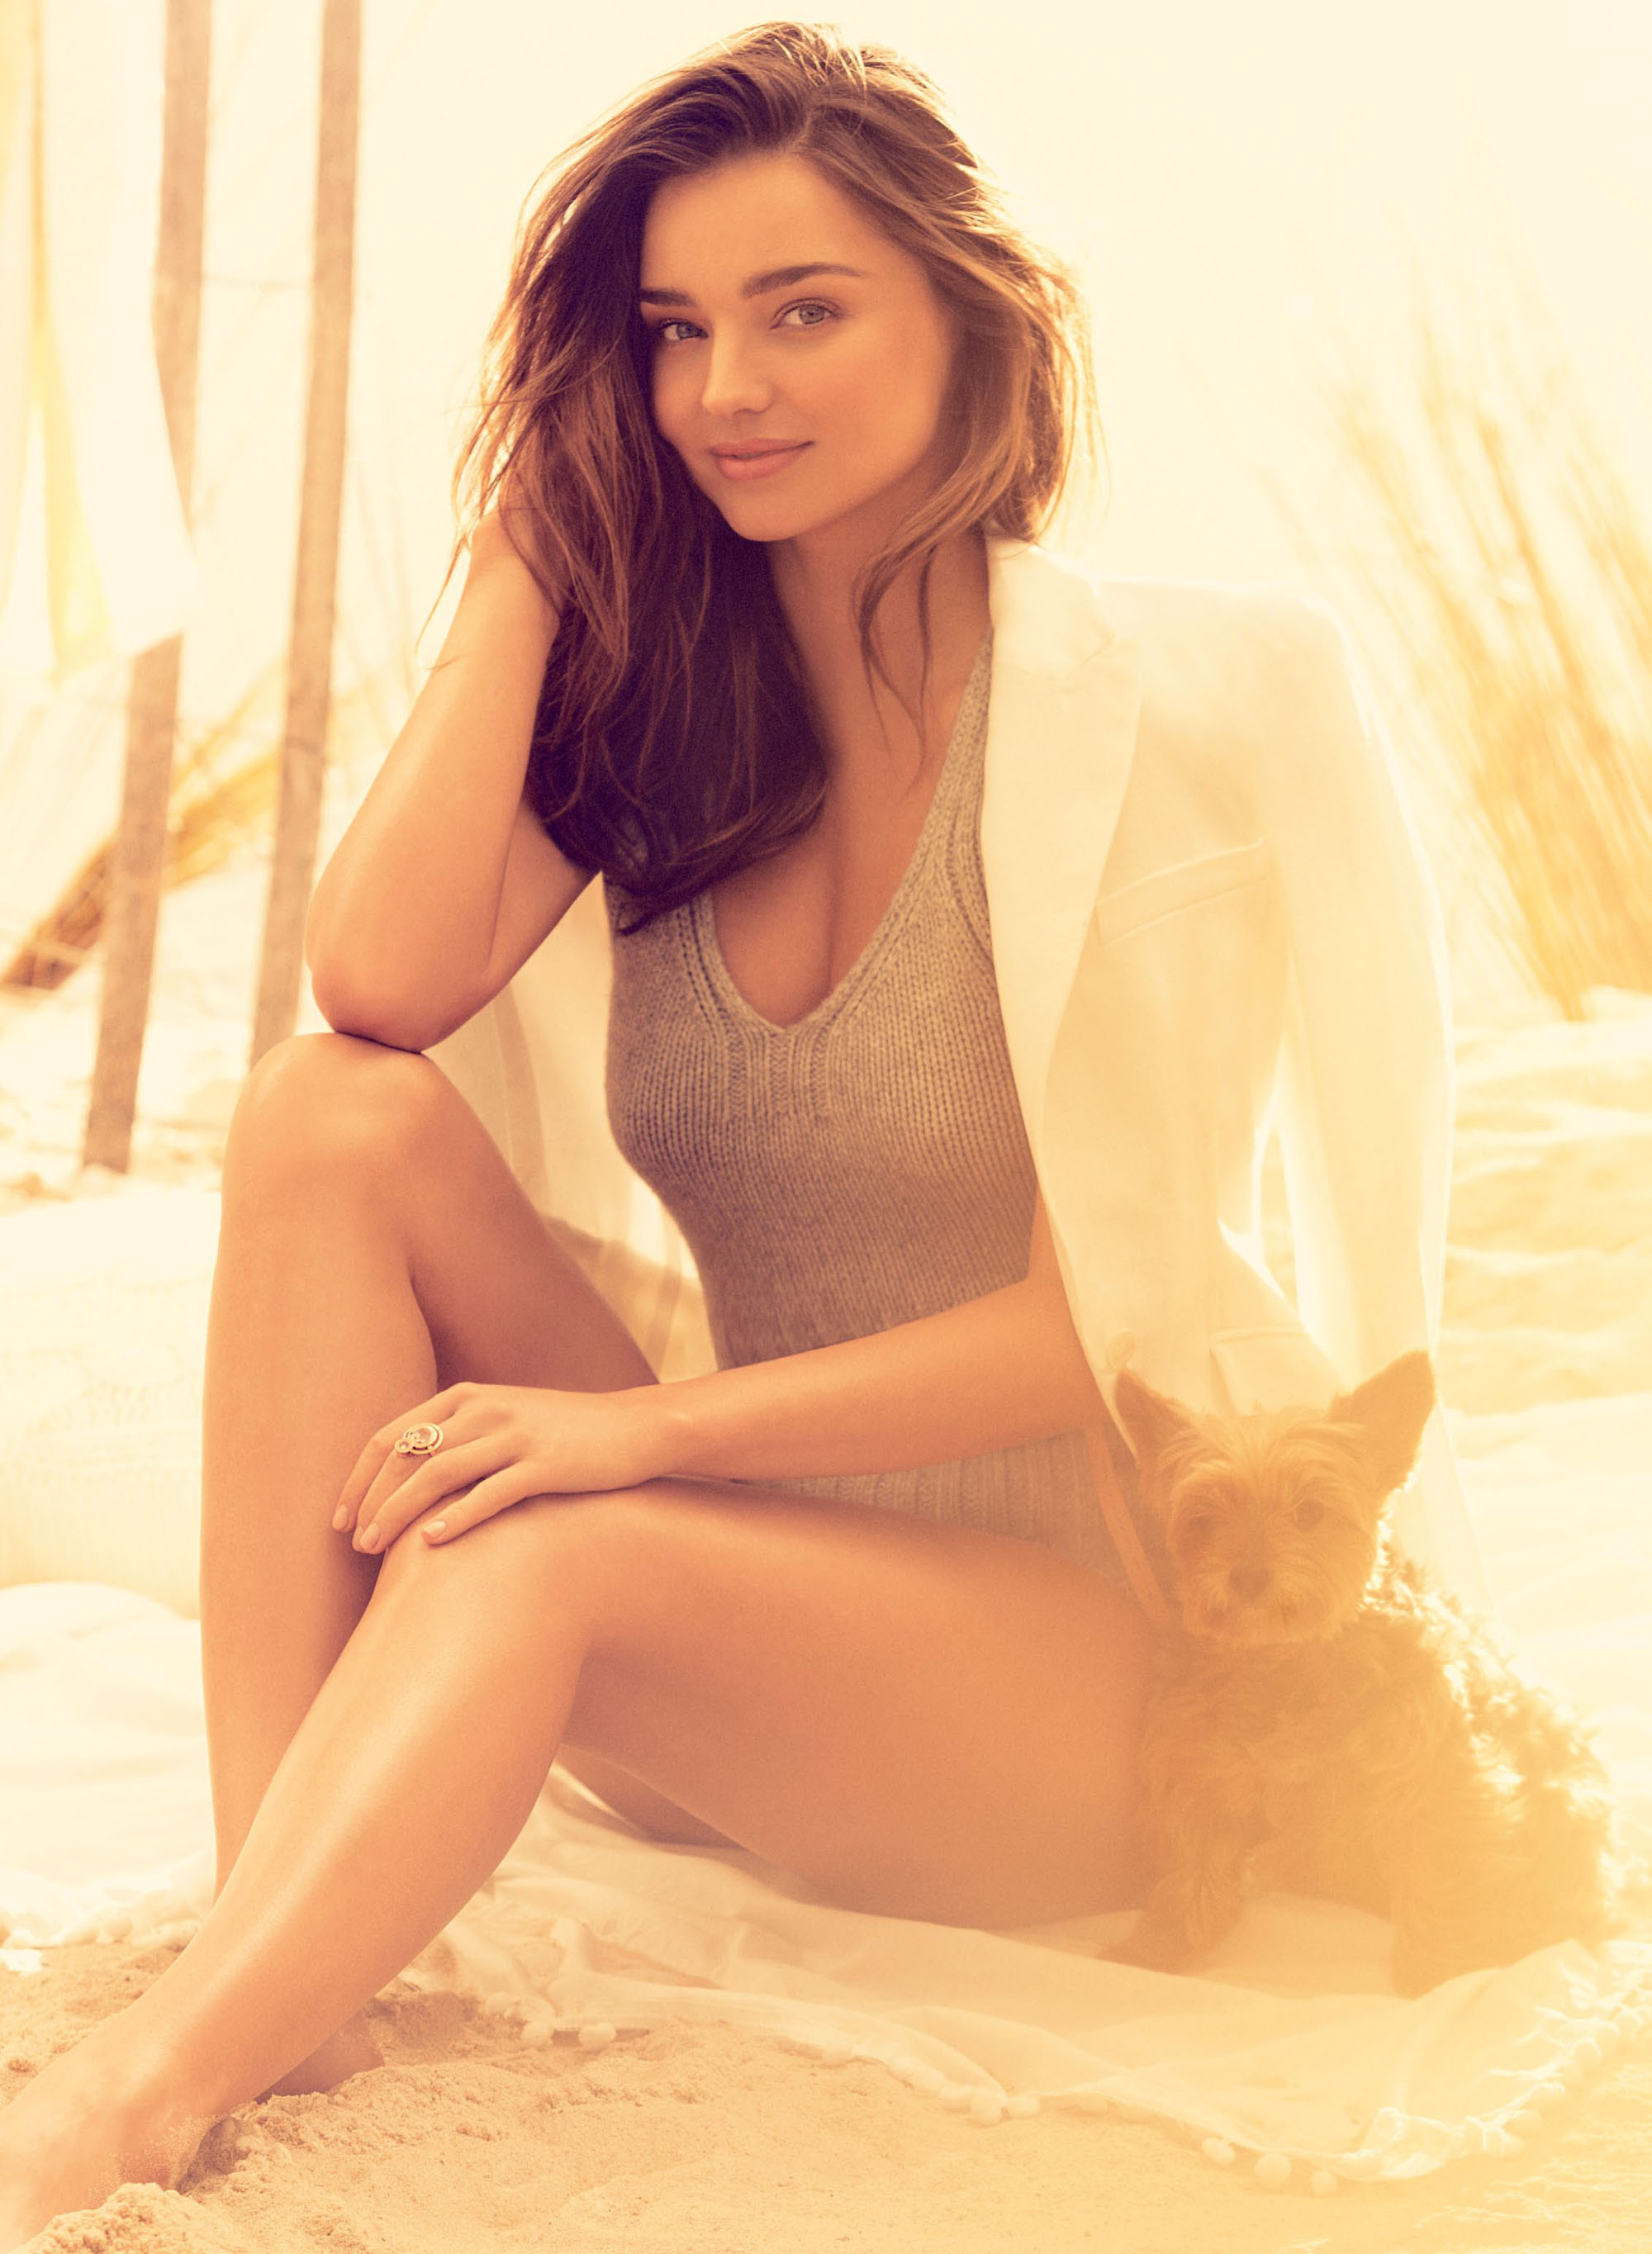 miranda-kerr-by-alexi-lubomirski-for-harper_s-bazaar-uk-june-20141